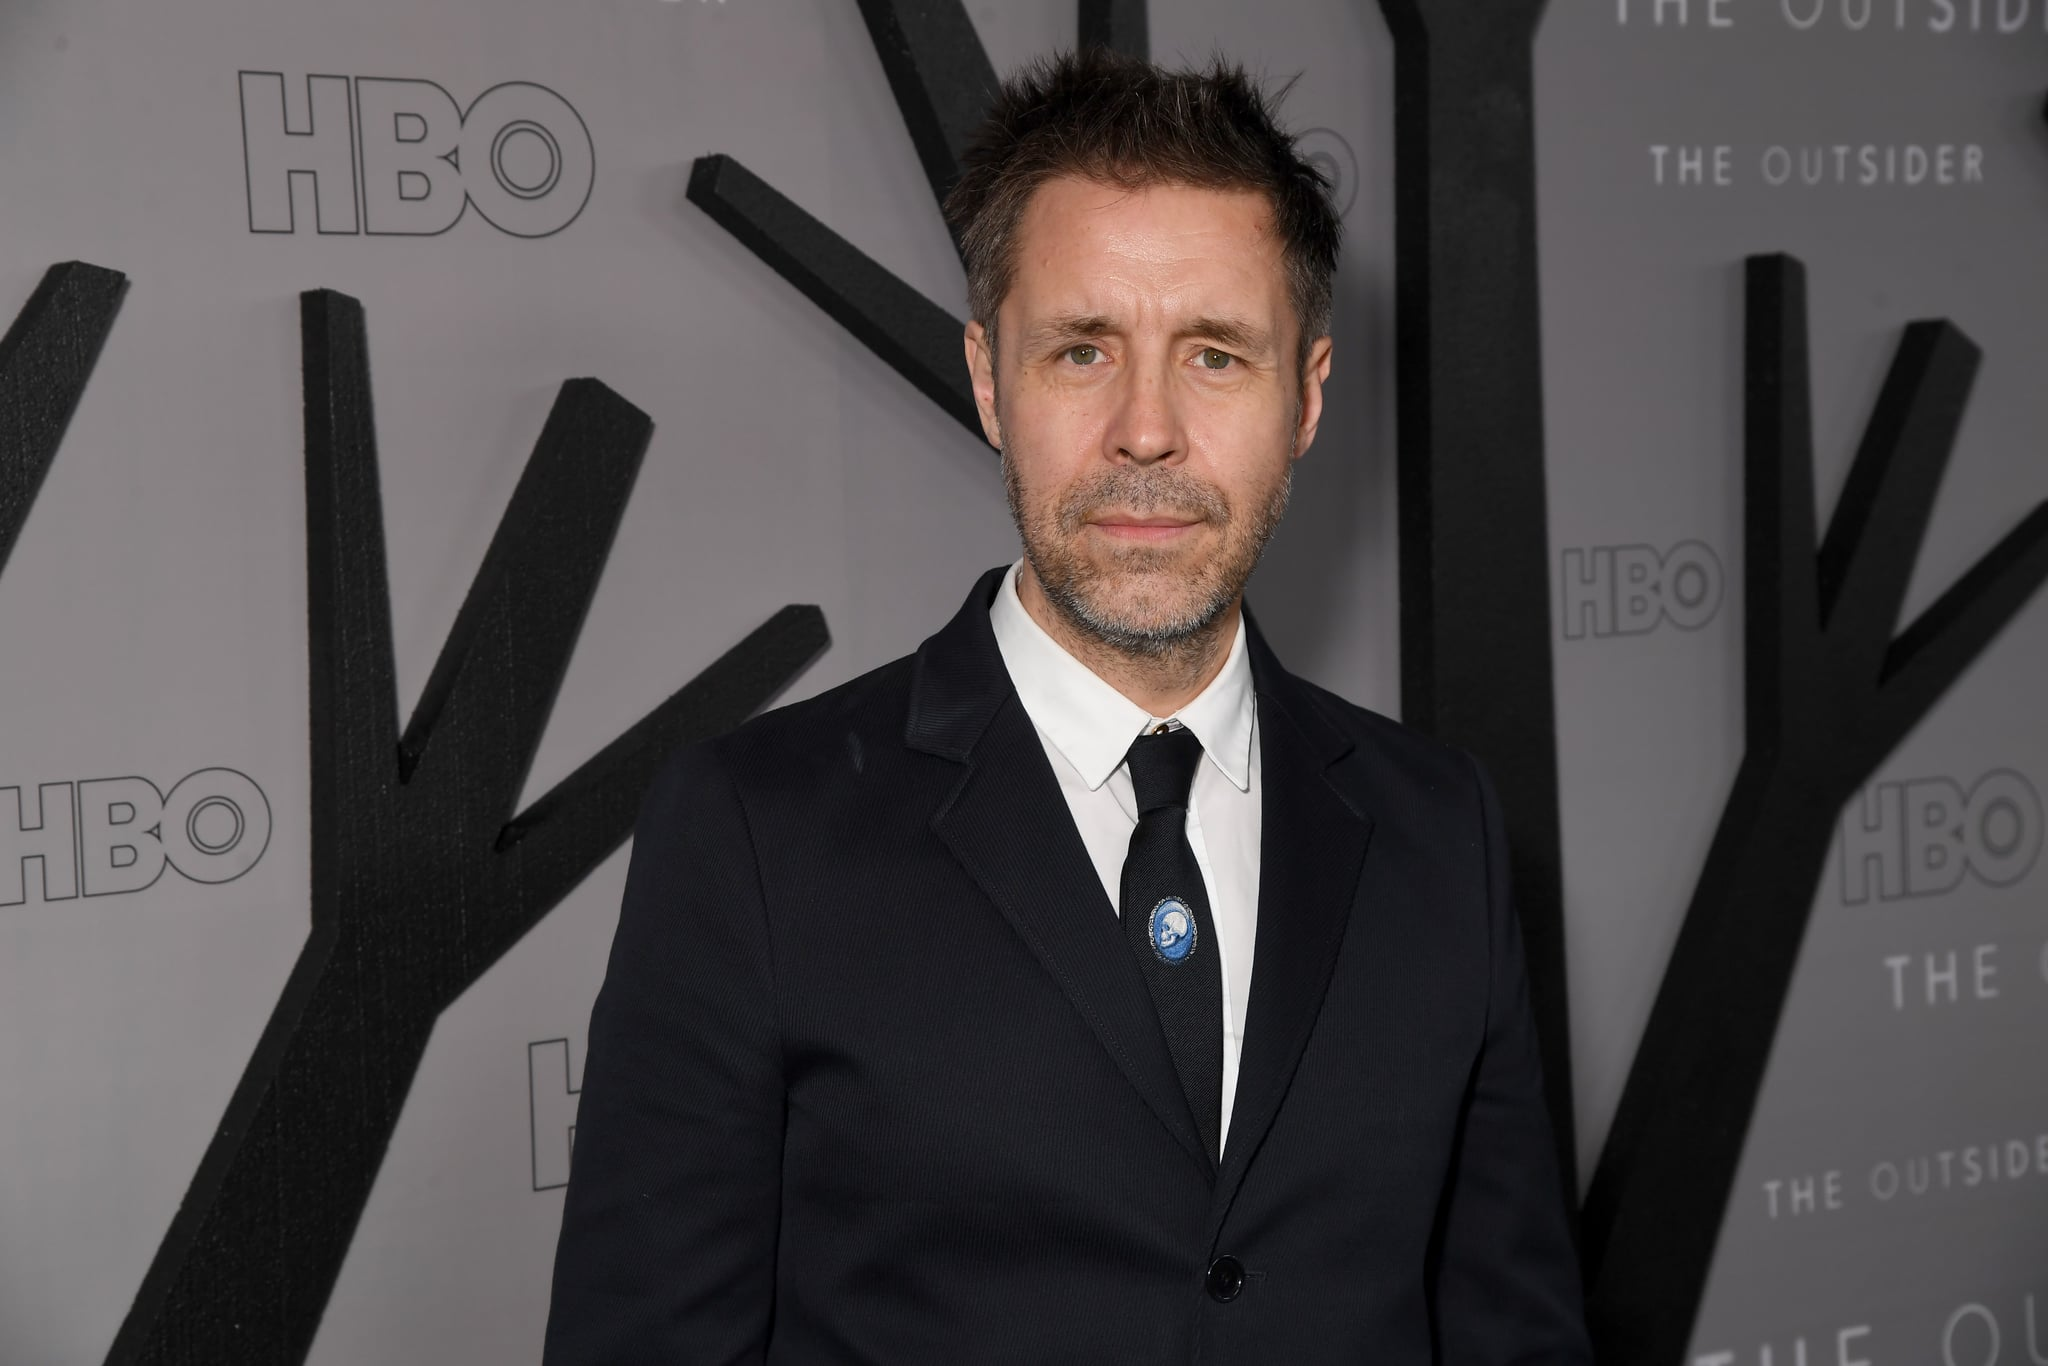 House of the Dragon: serie precuela de GoT ficha a su Rey Viserys I, el actor Paddy Considine